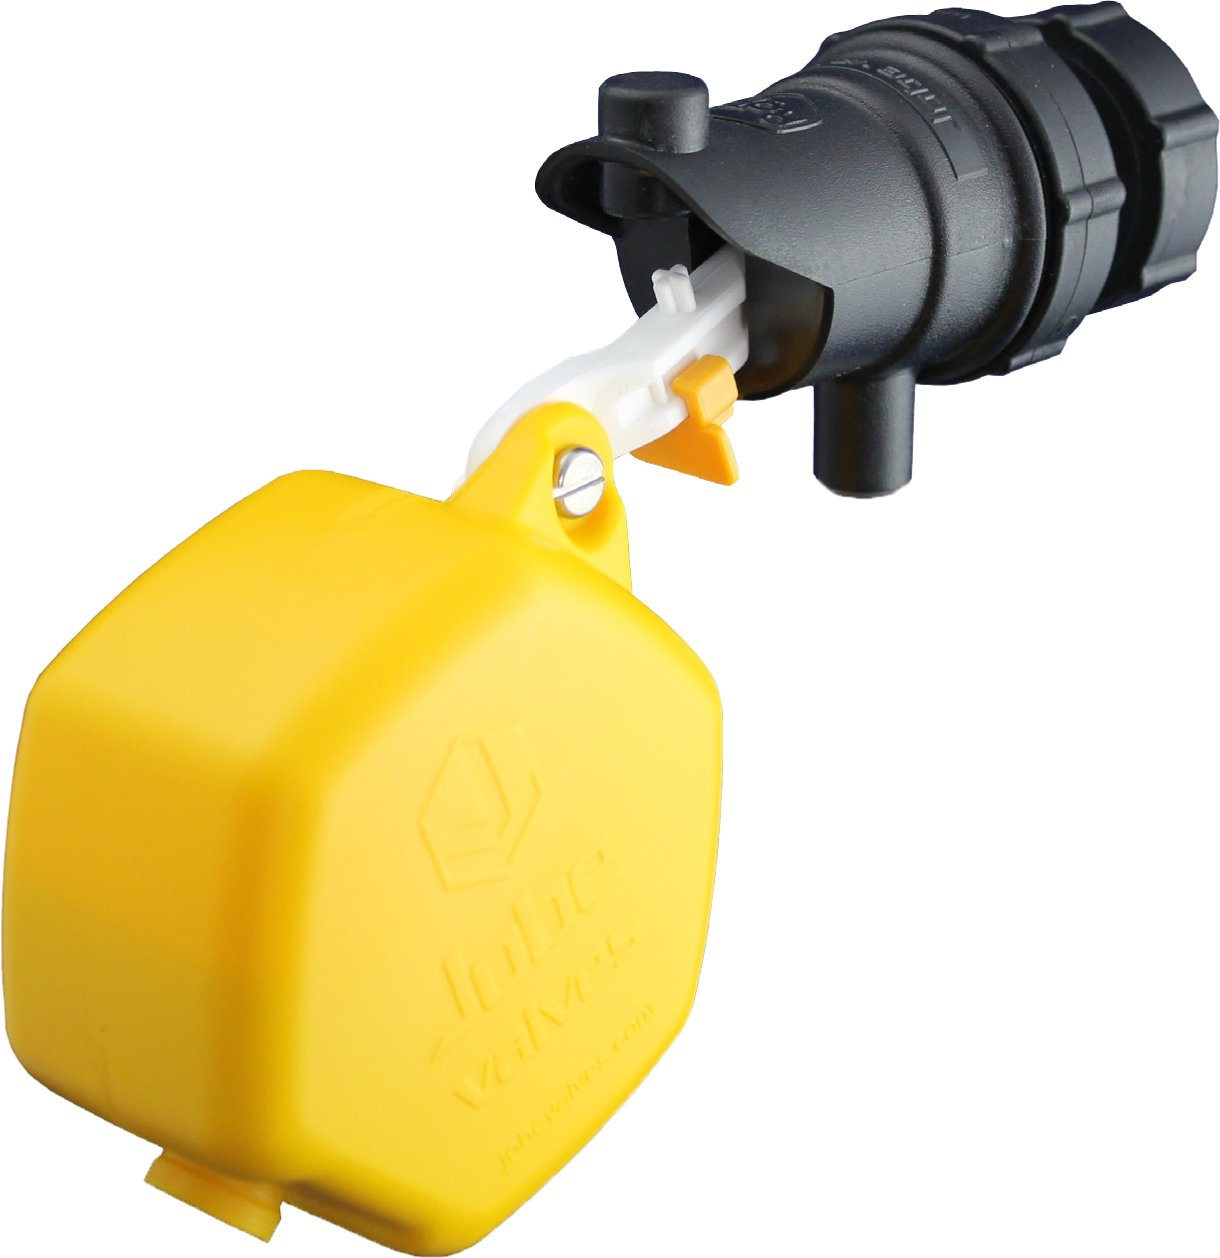 Jobe Valves Rojo Compact Float Valve, 3/4'', Yellow/Black by Jobe Valves